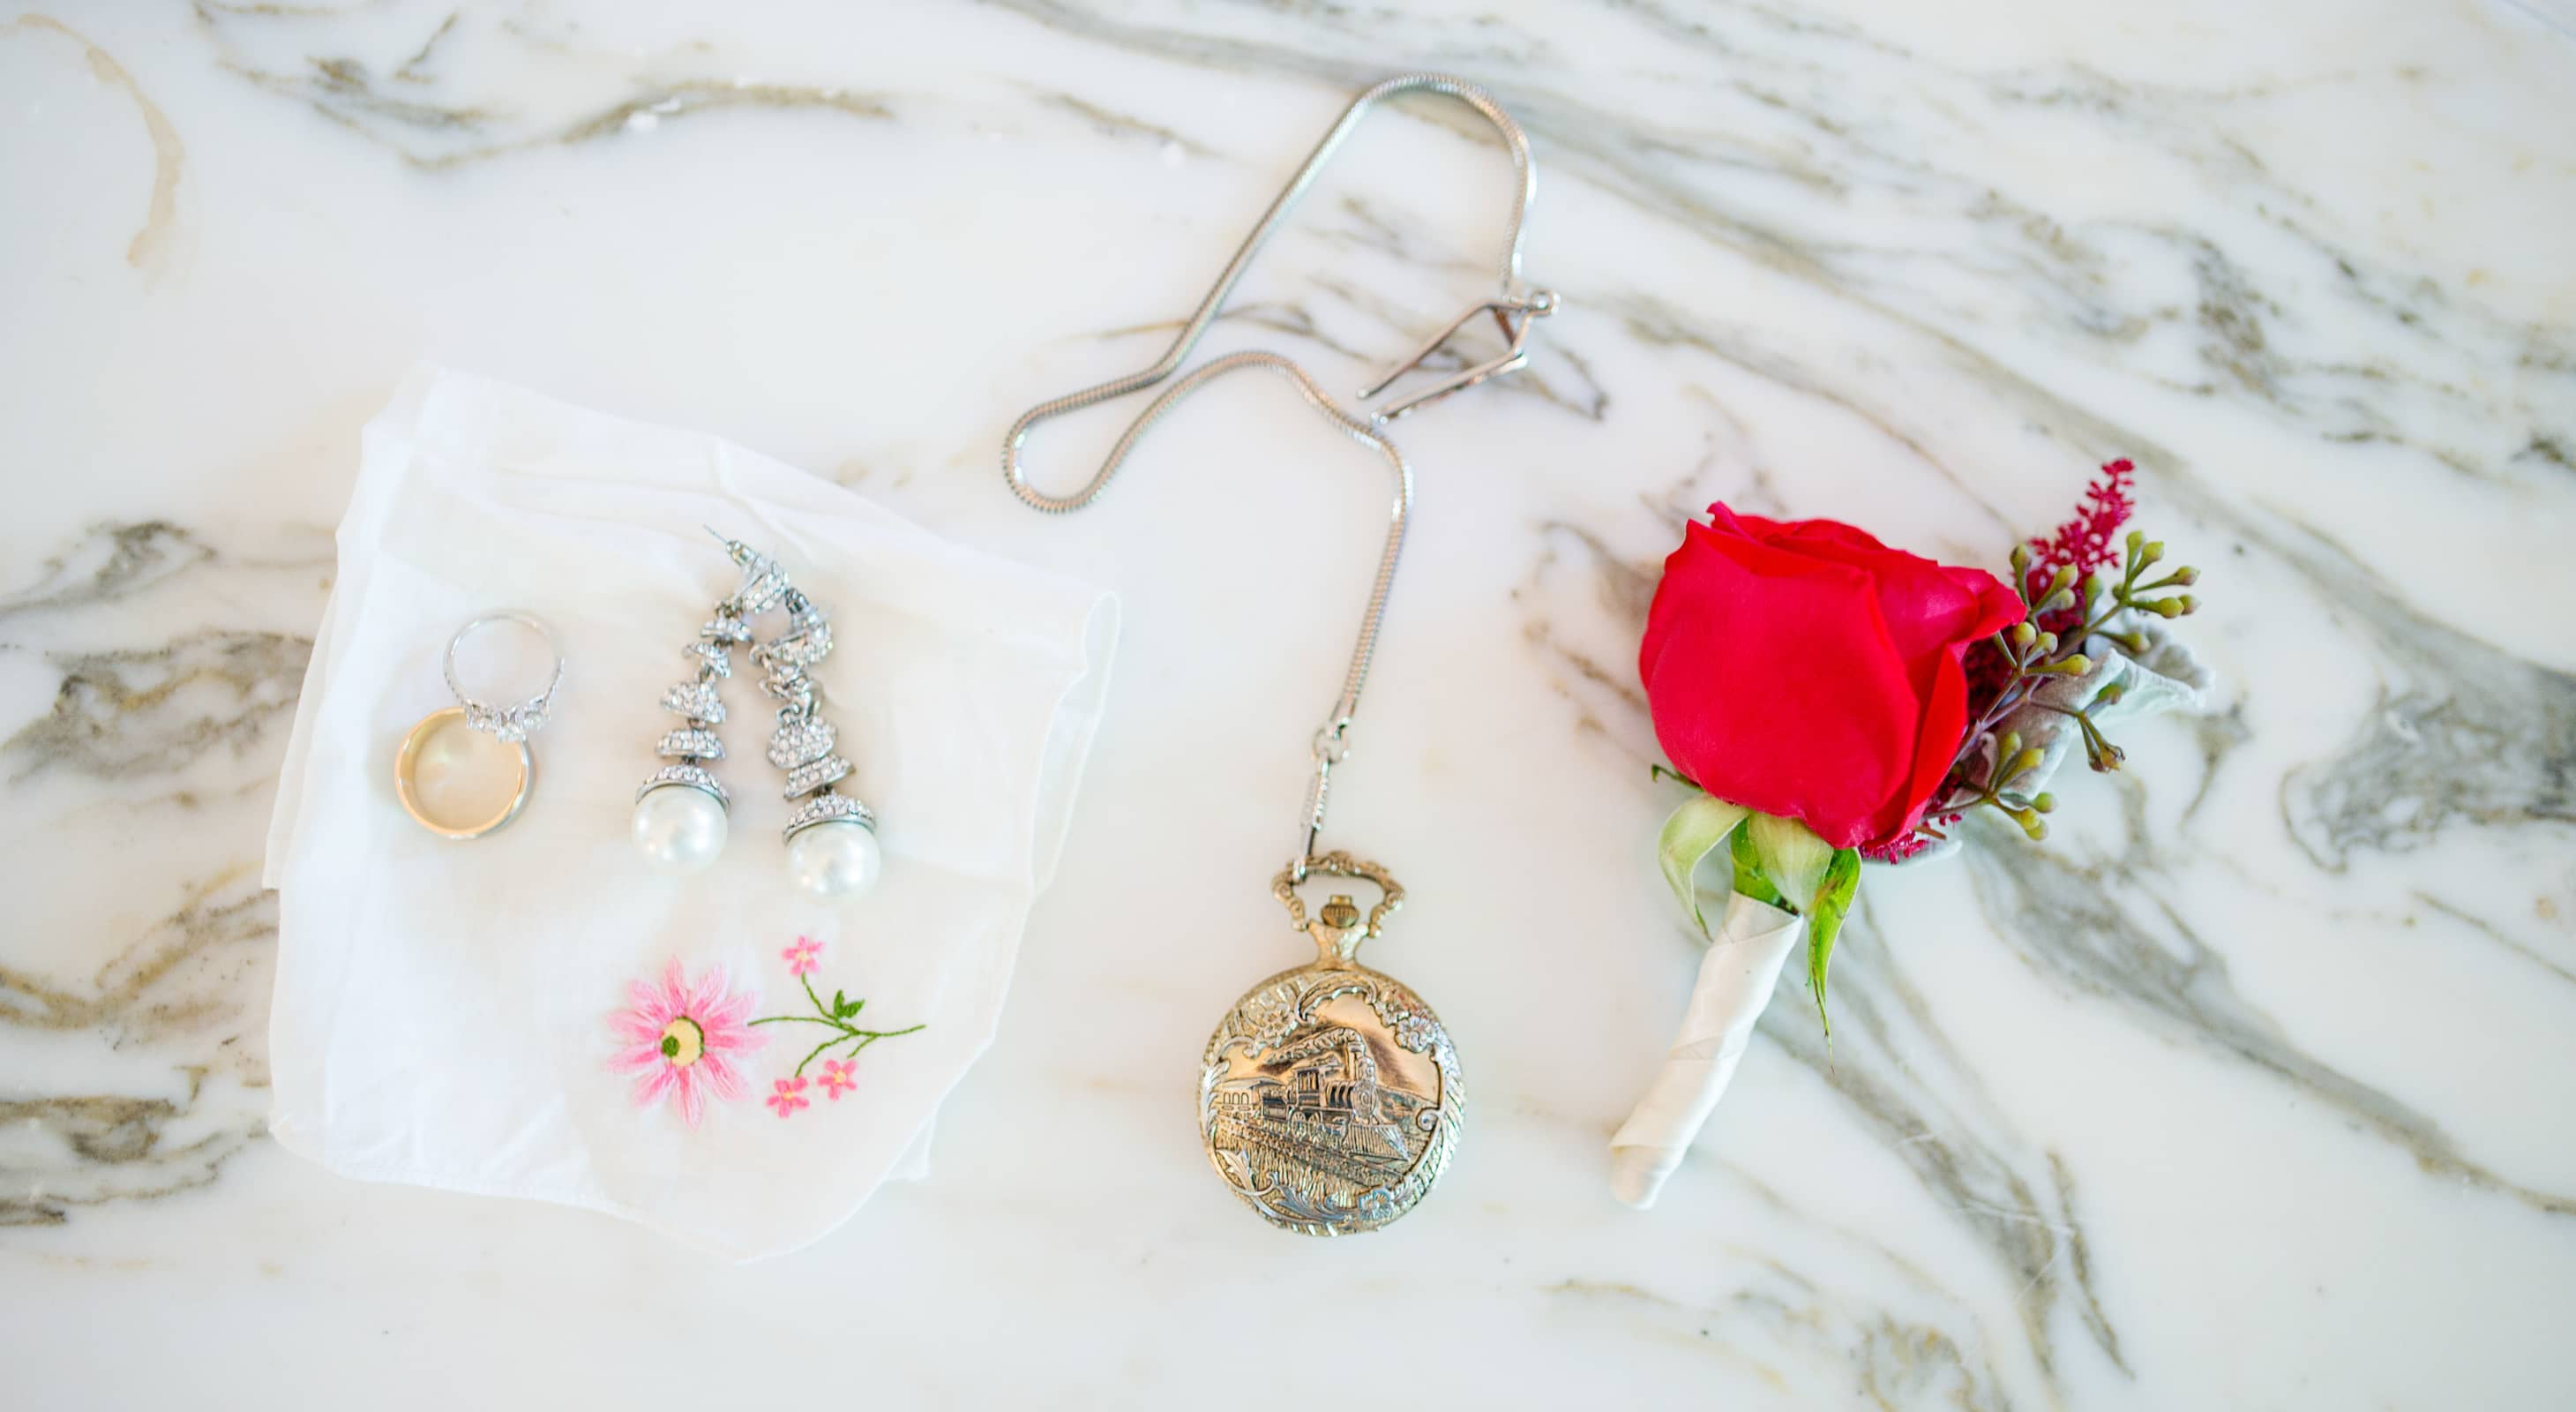 Wedding Accessories for an Outer Banks Wedding